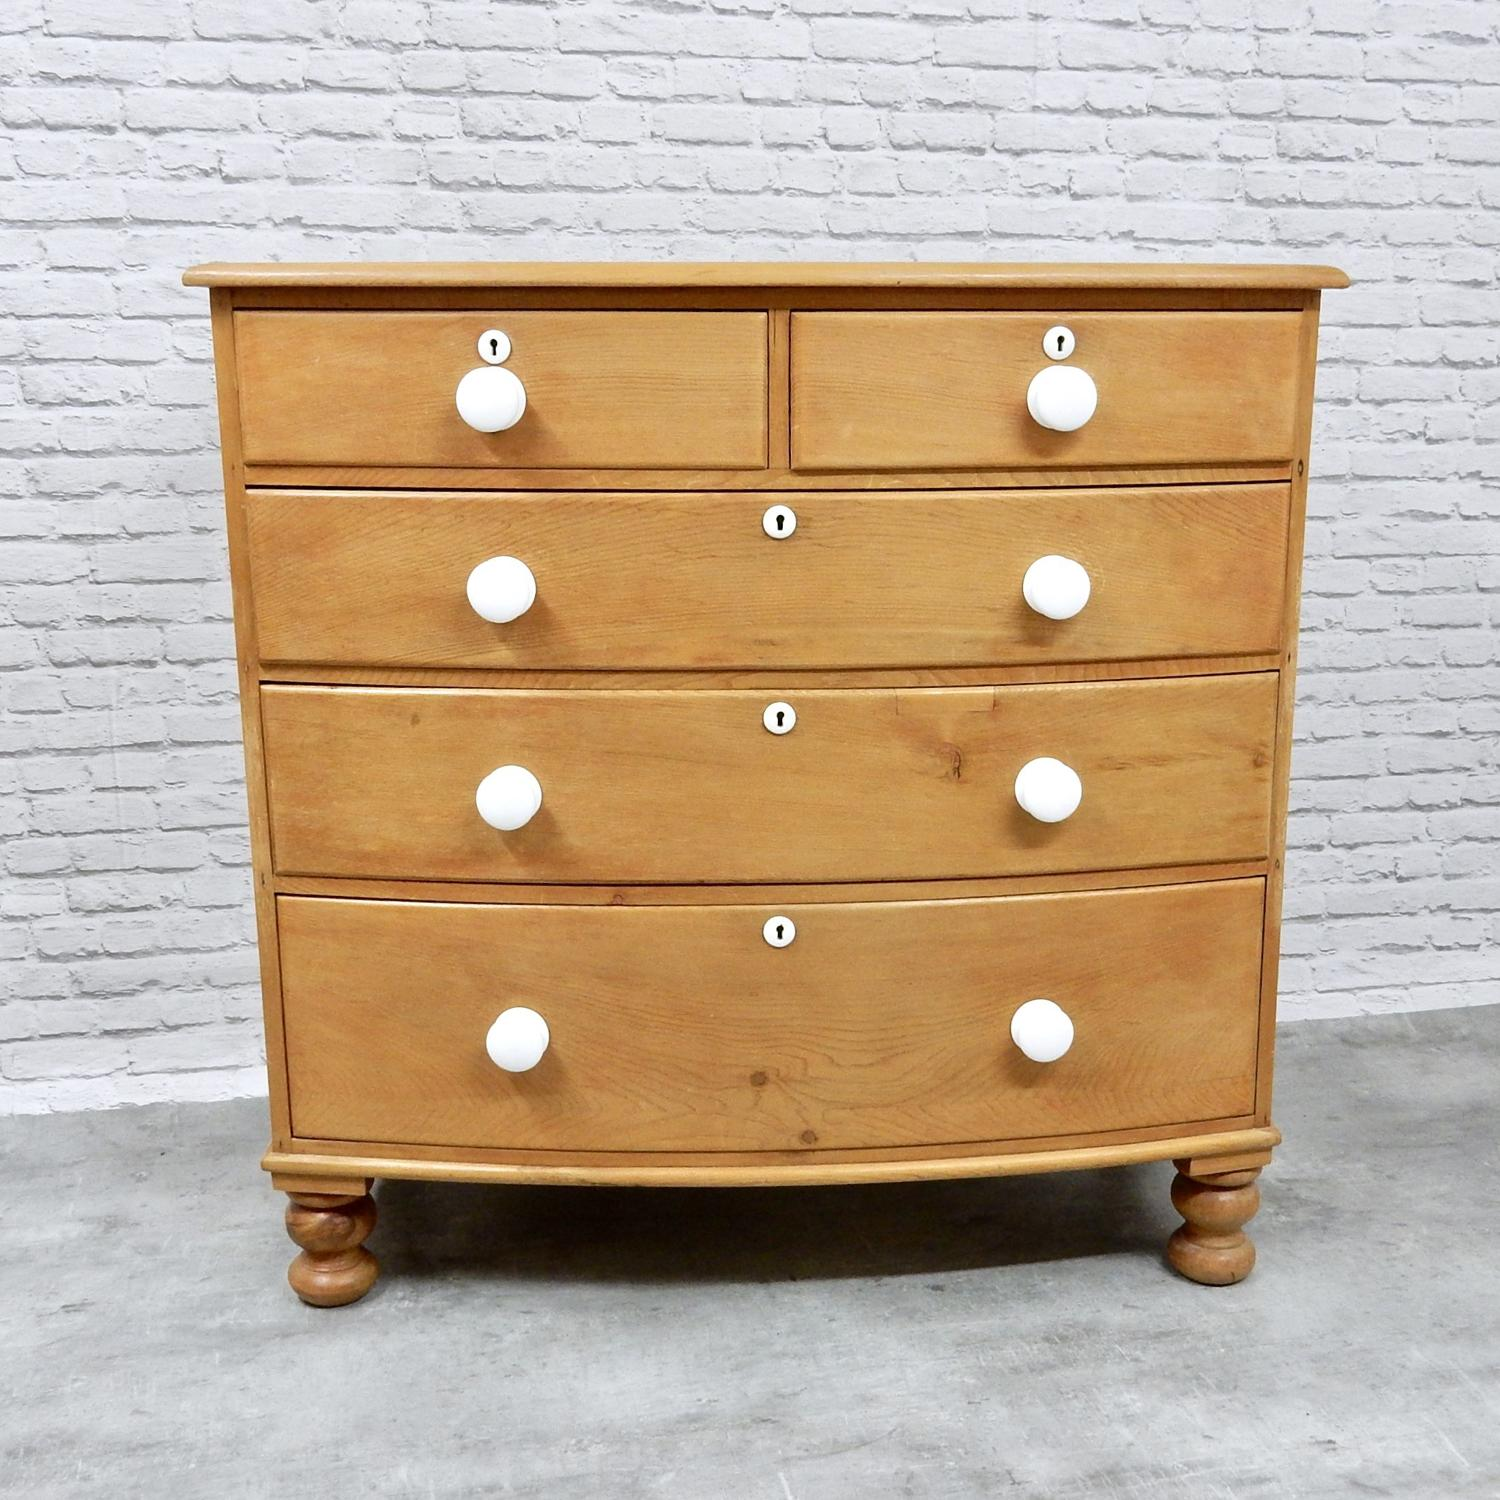 Bow-fronted Pine Chest of Drawers